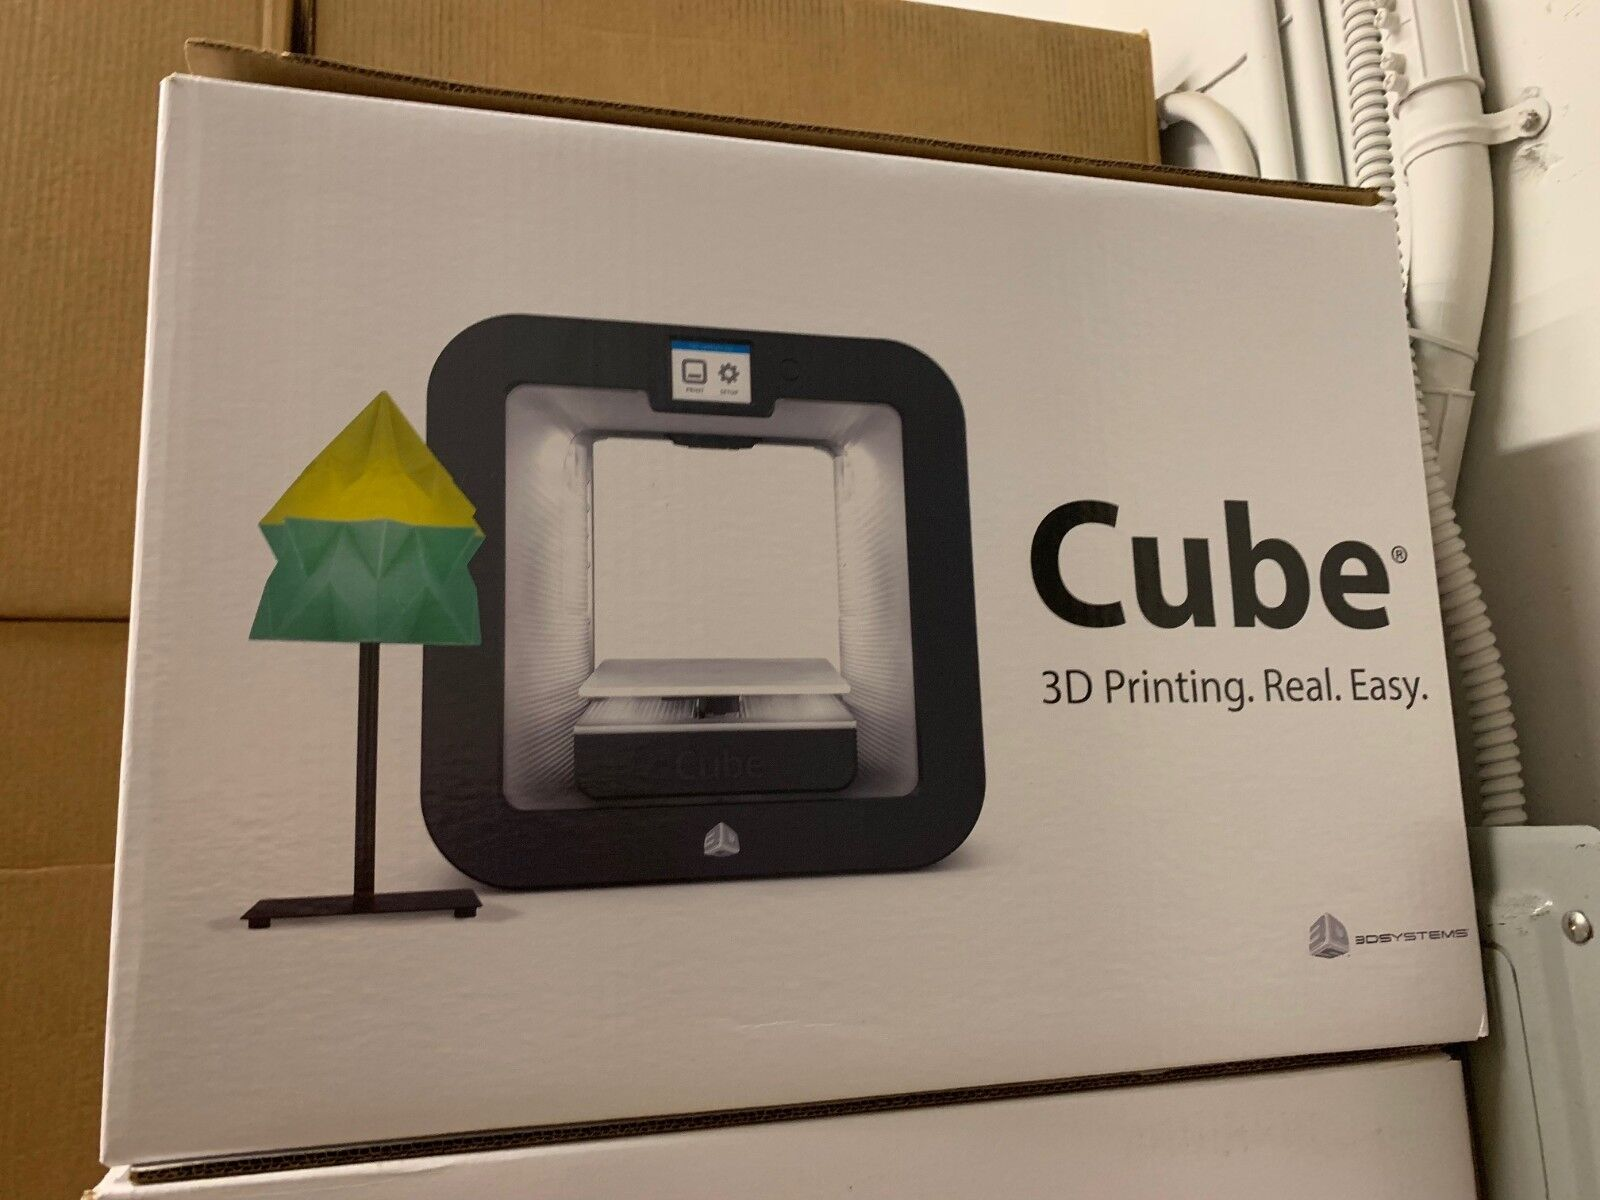 NEW 3D Systems Cube 3D Wireless Printer, 3rd Generation, Gre